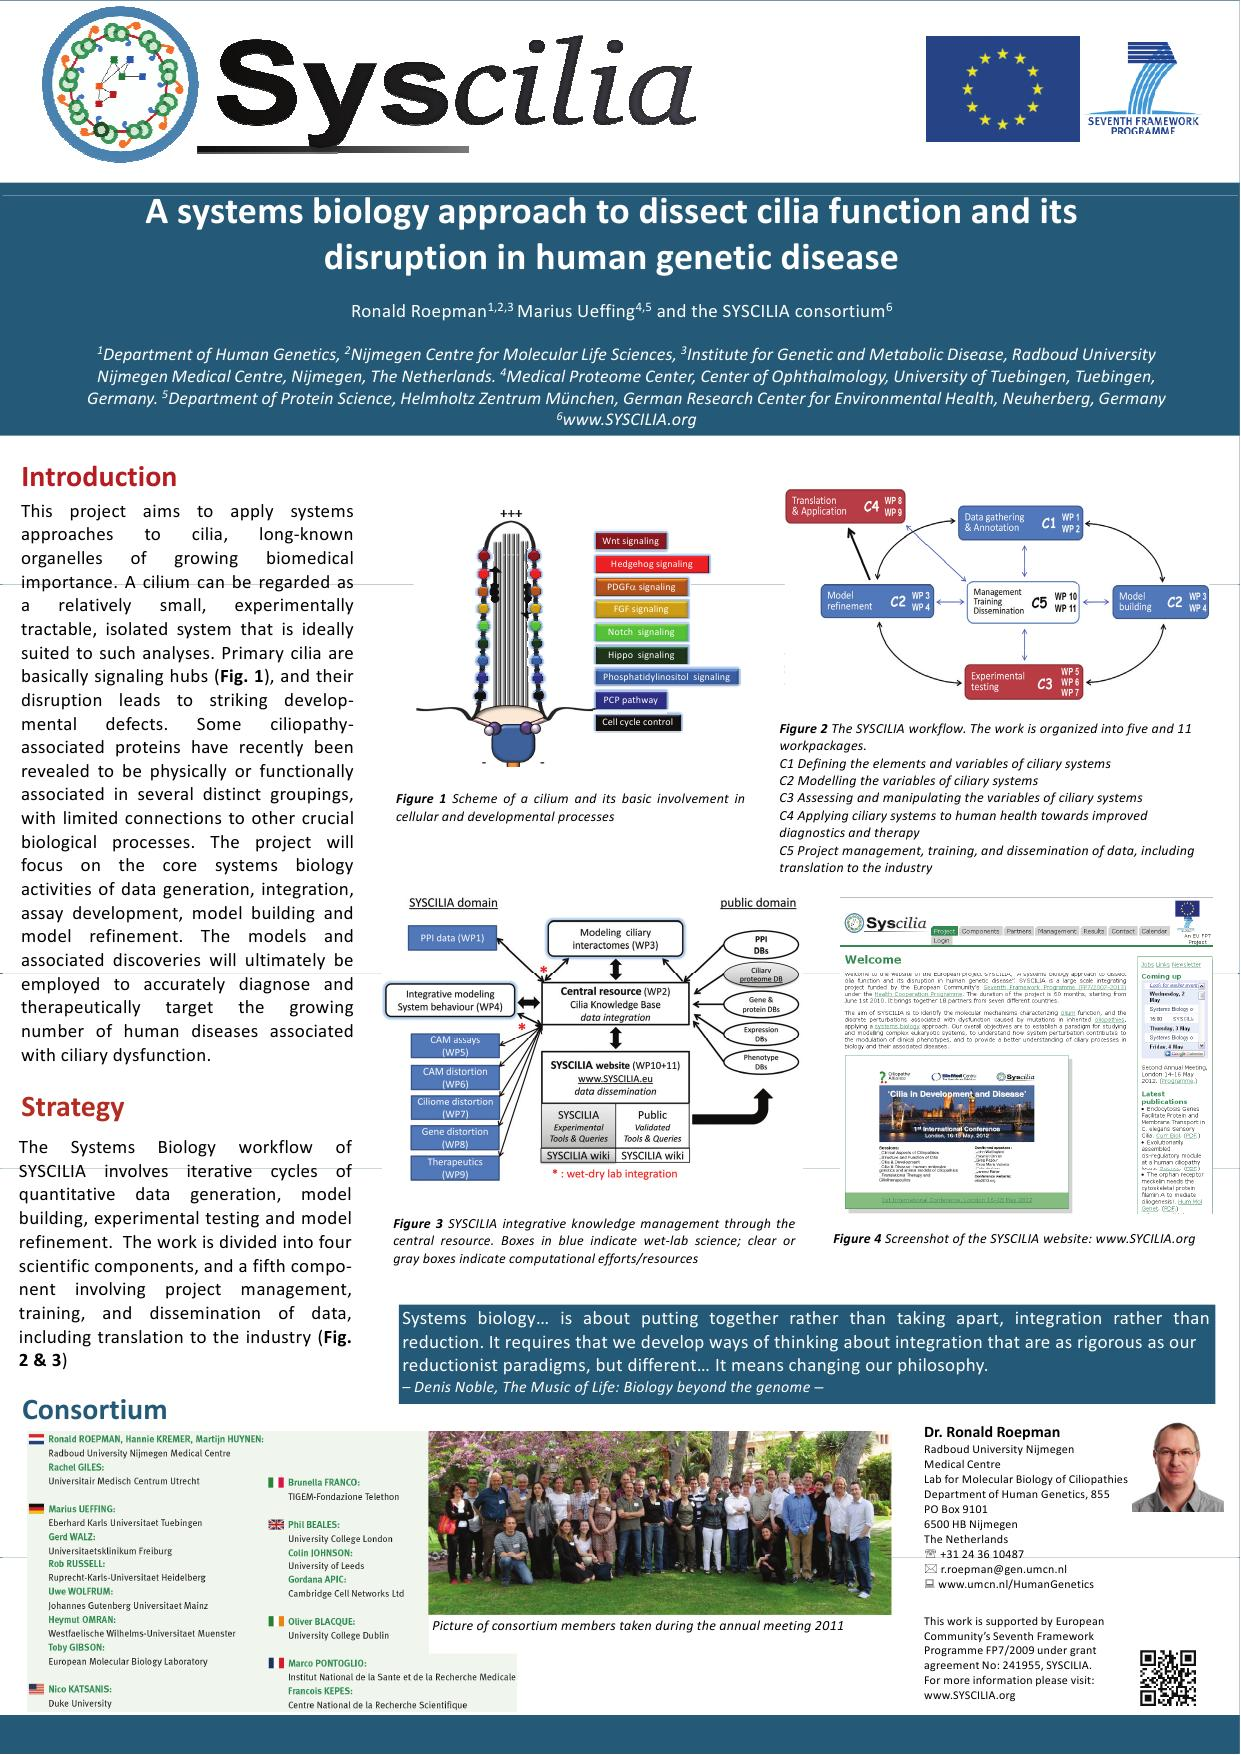 Poster for Cilia 2012